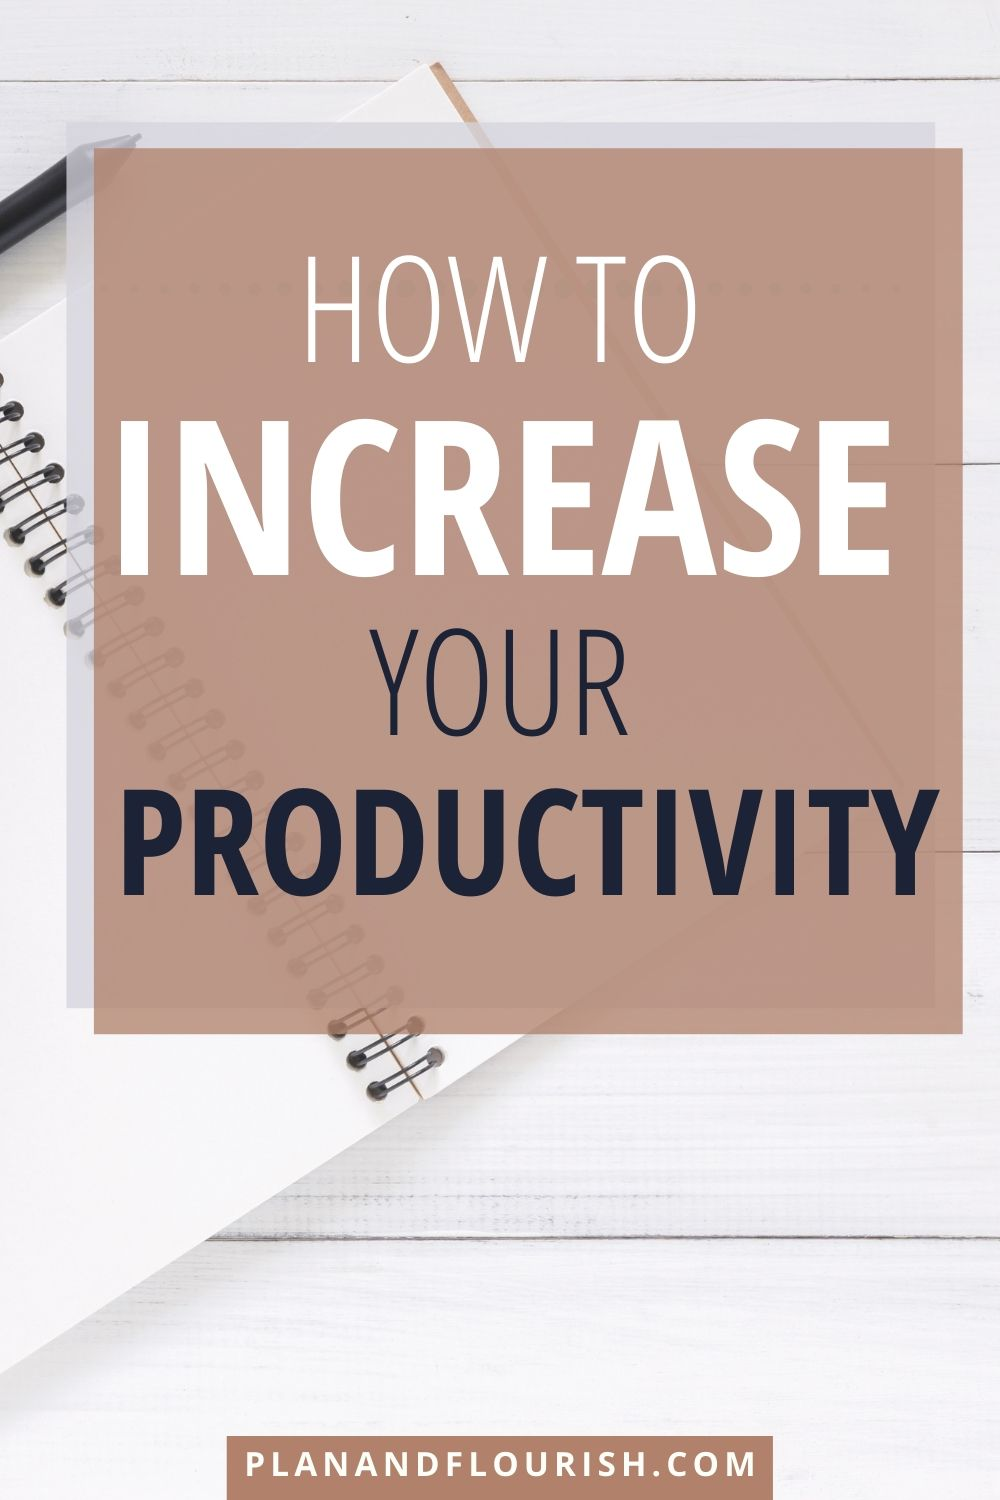 How To Increase Your Productivity | Find out now!